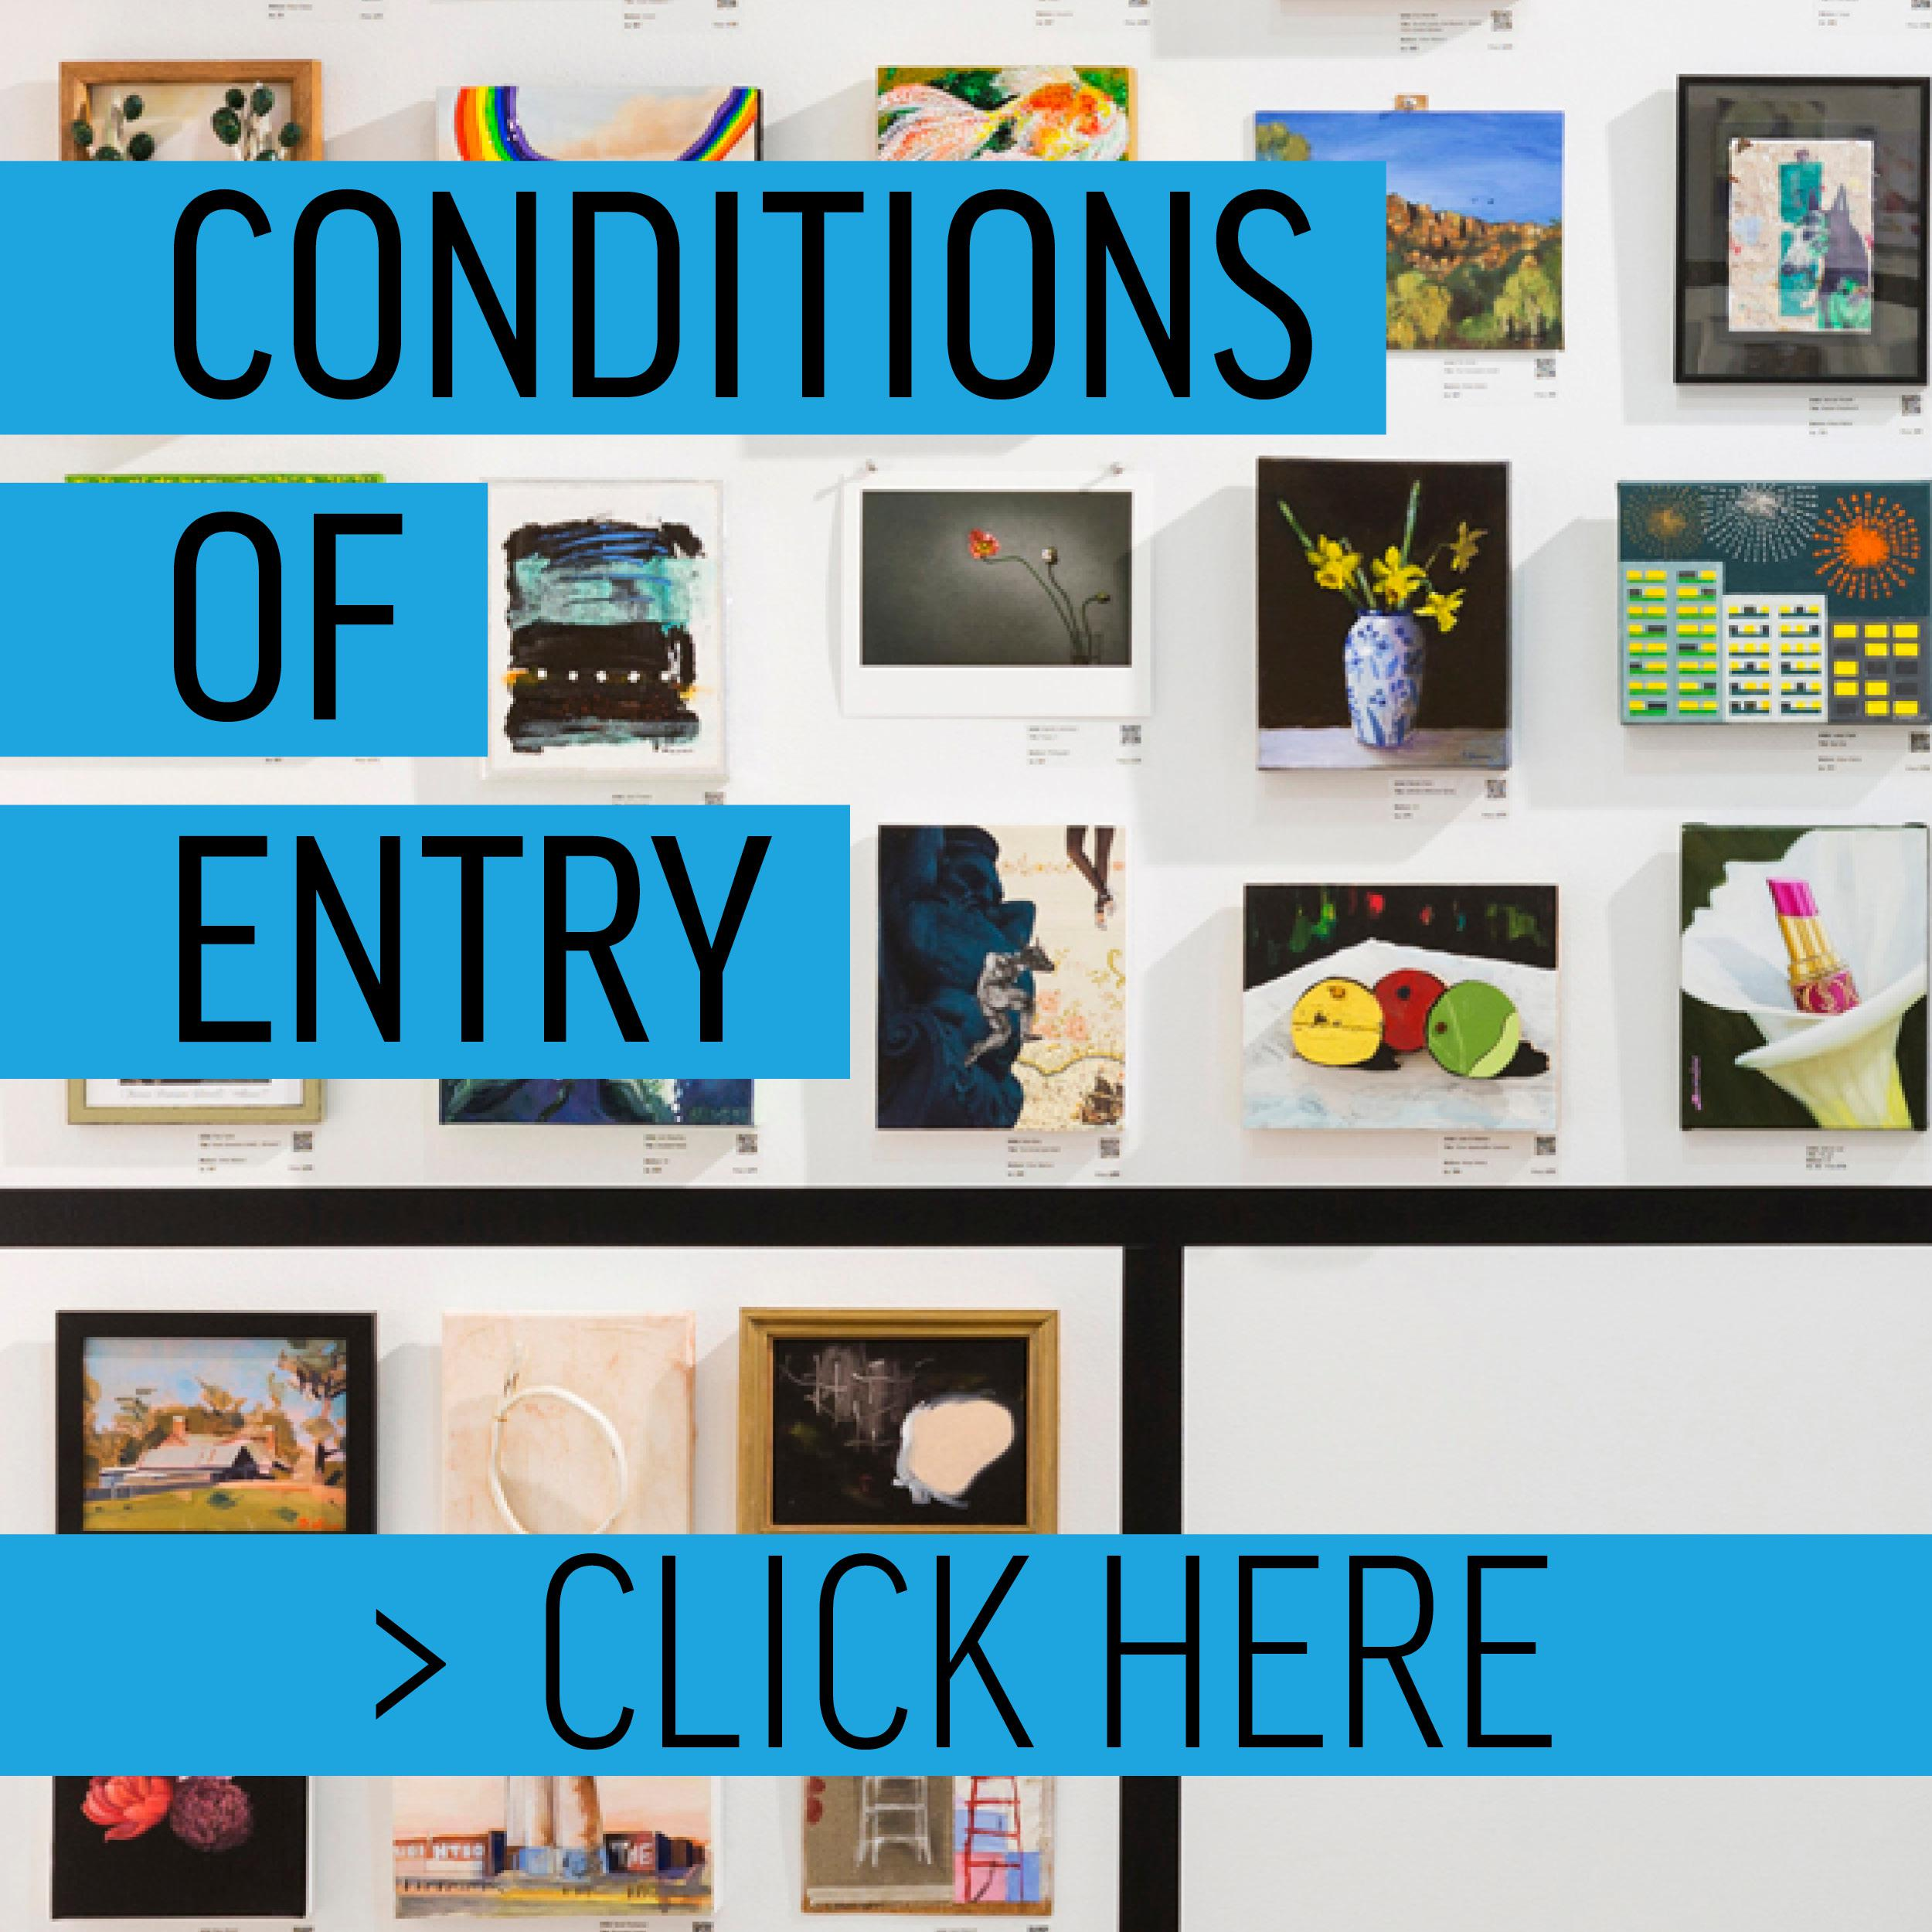 Conditions of entry